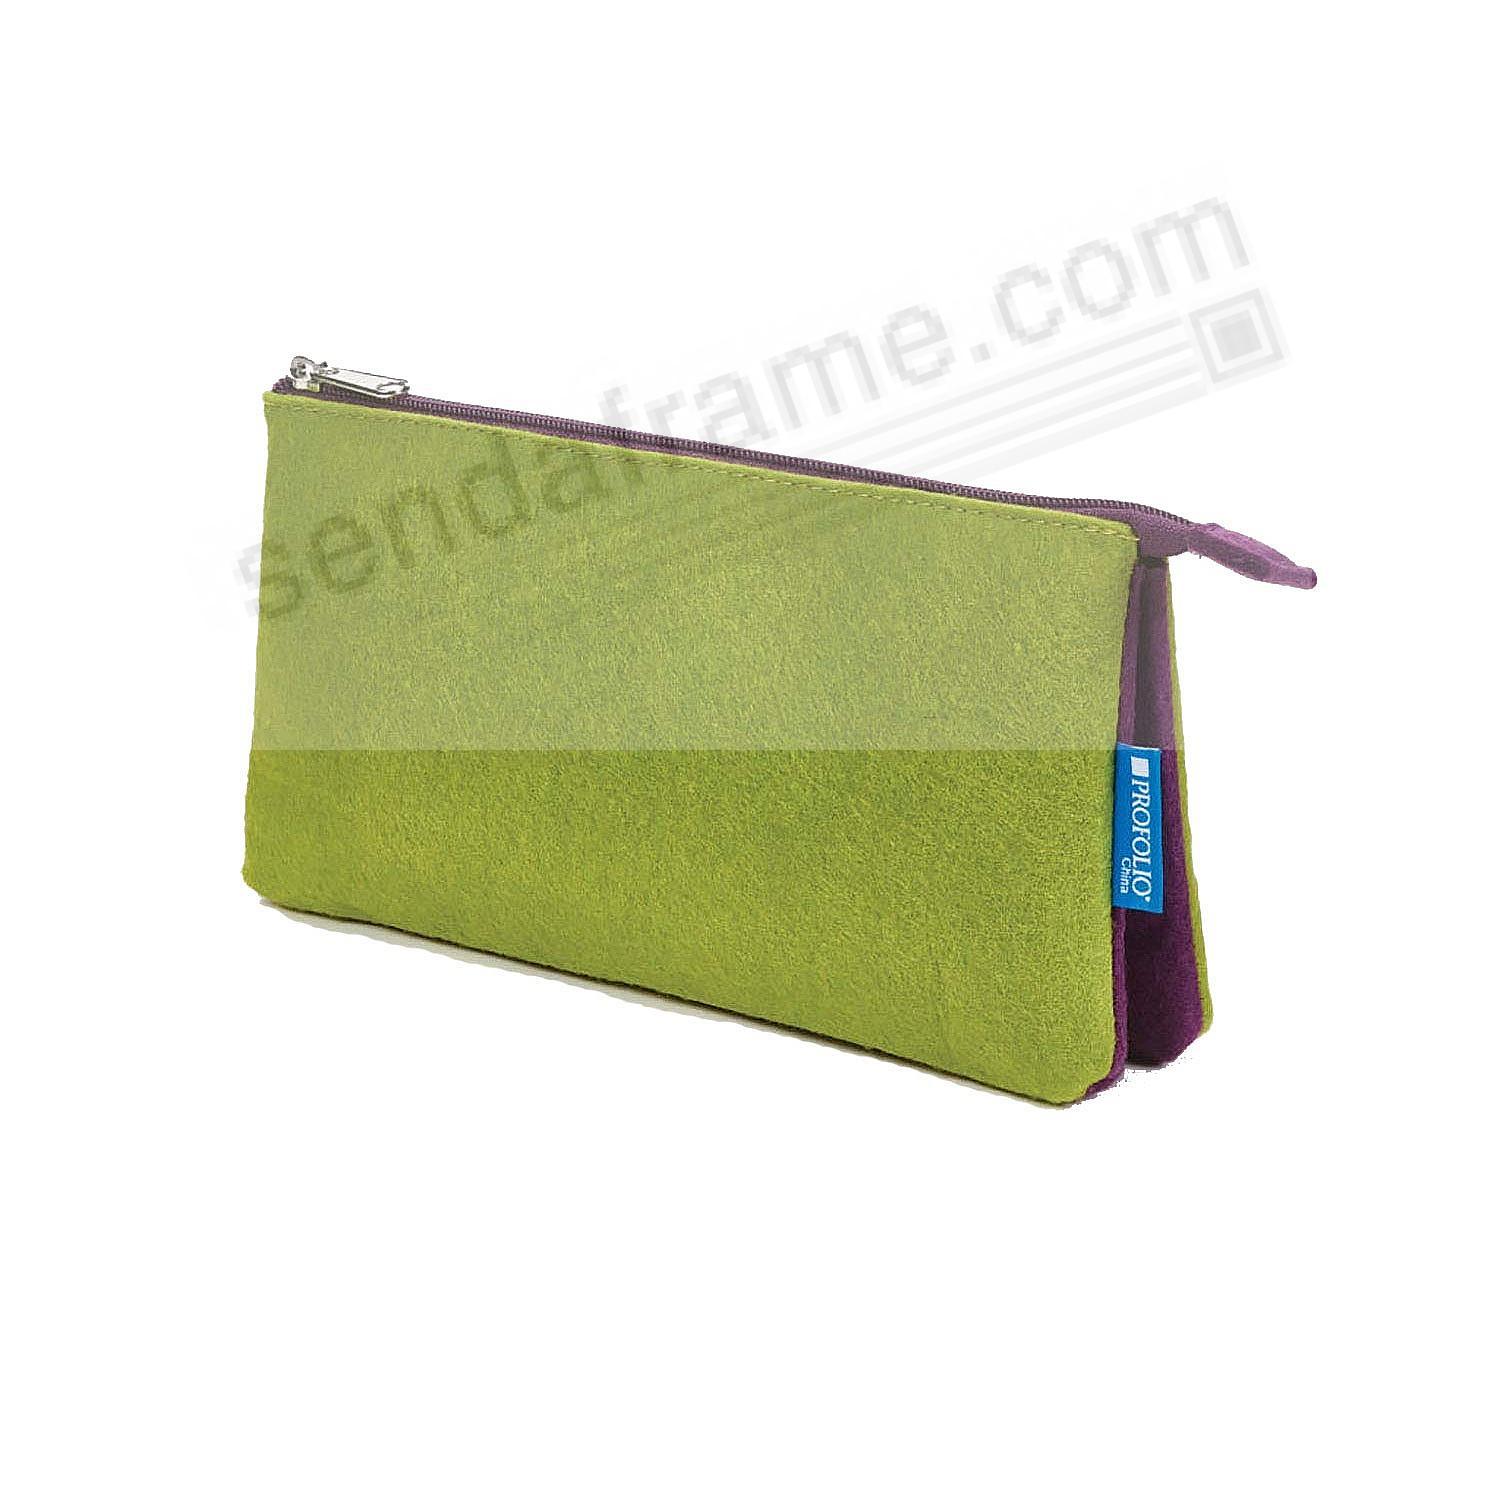 The NEW PROFOLIO MIDTOWN POUCH by Itoya - GREEN/Purple (5x9-Large)